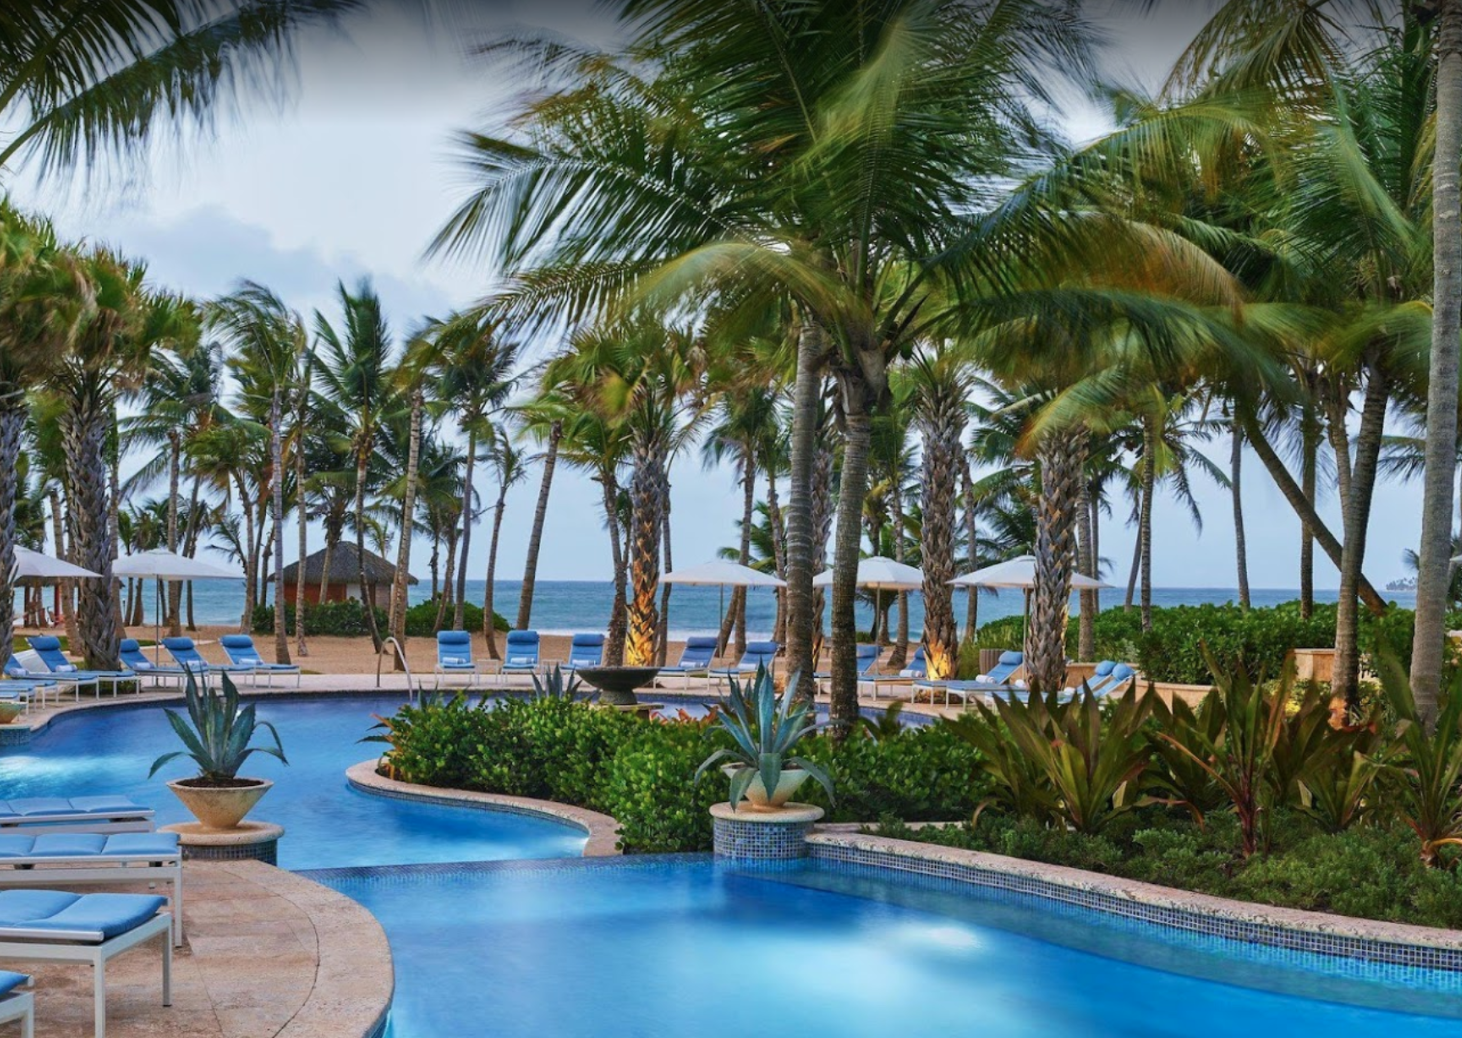 The St. Regis Bahia Beach Resort Rio Grande Puerto Rico